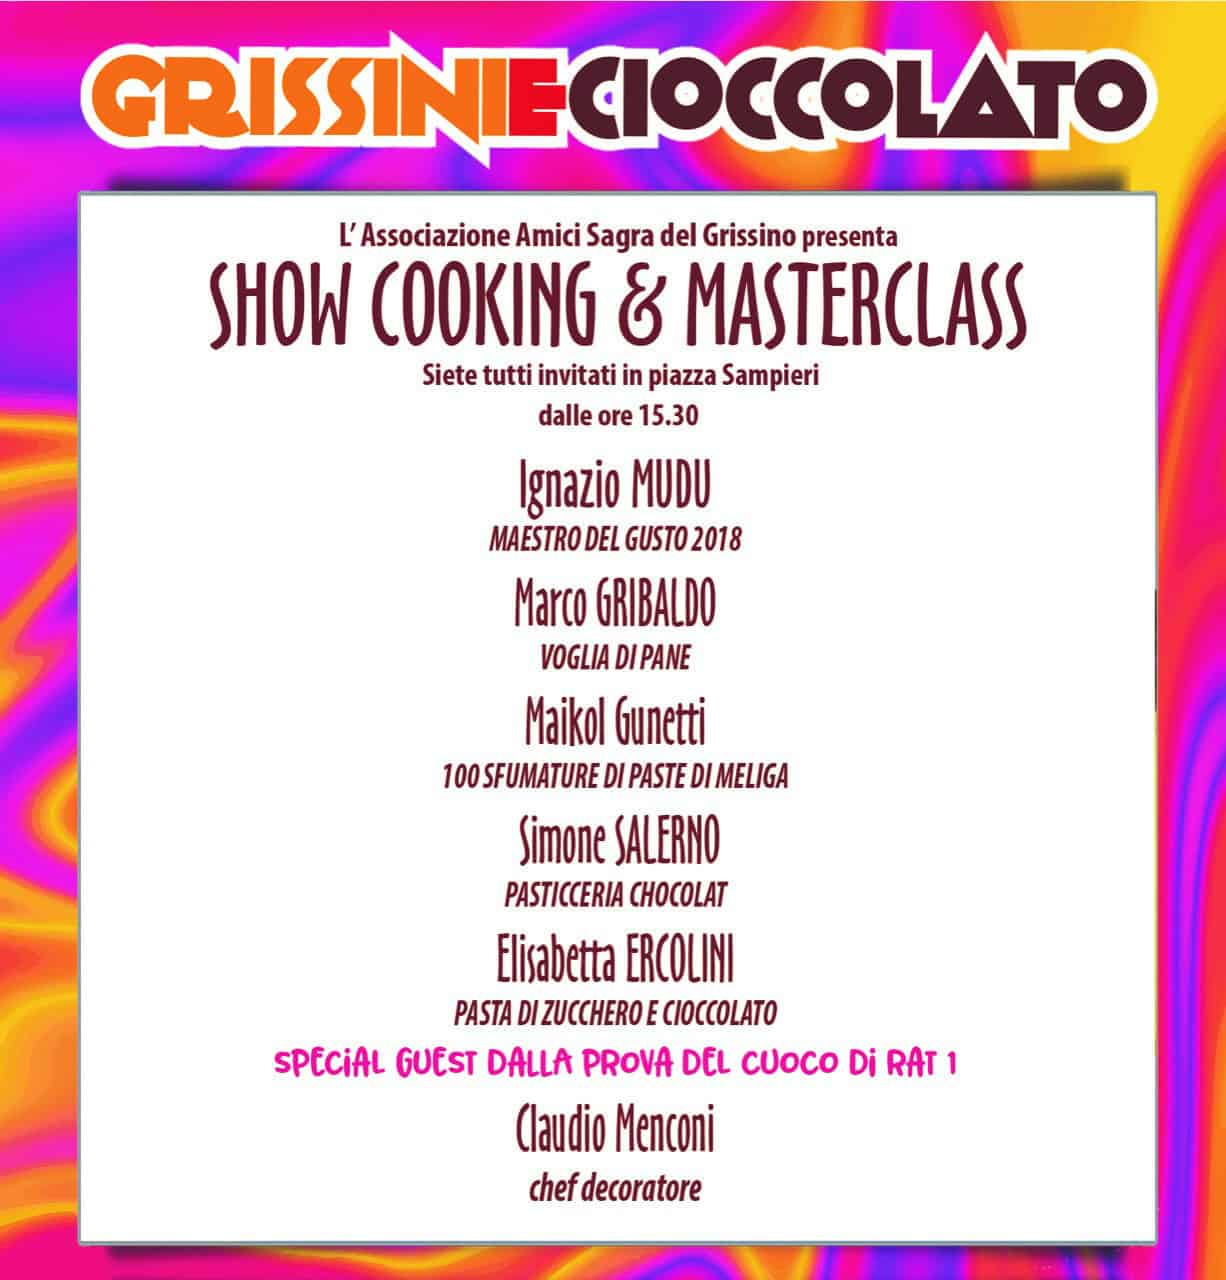 Show Cooking & Masterclass